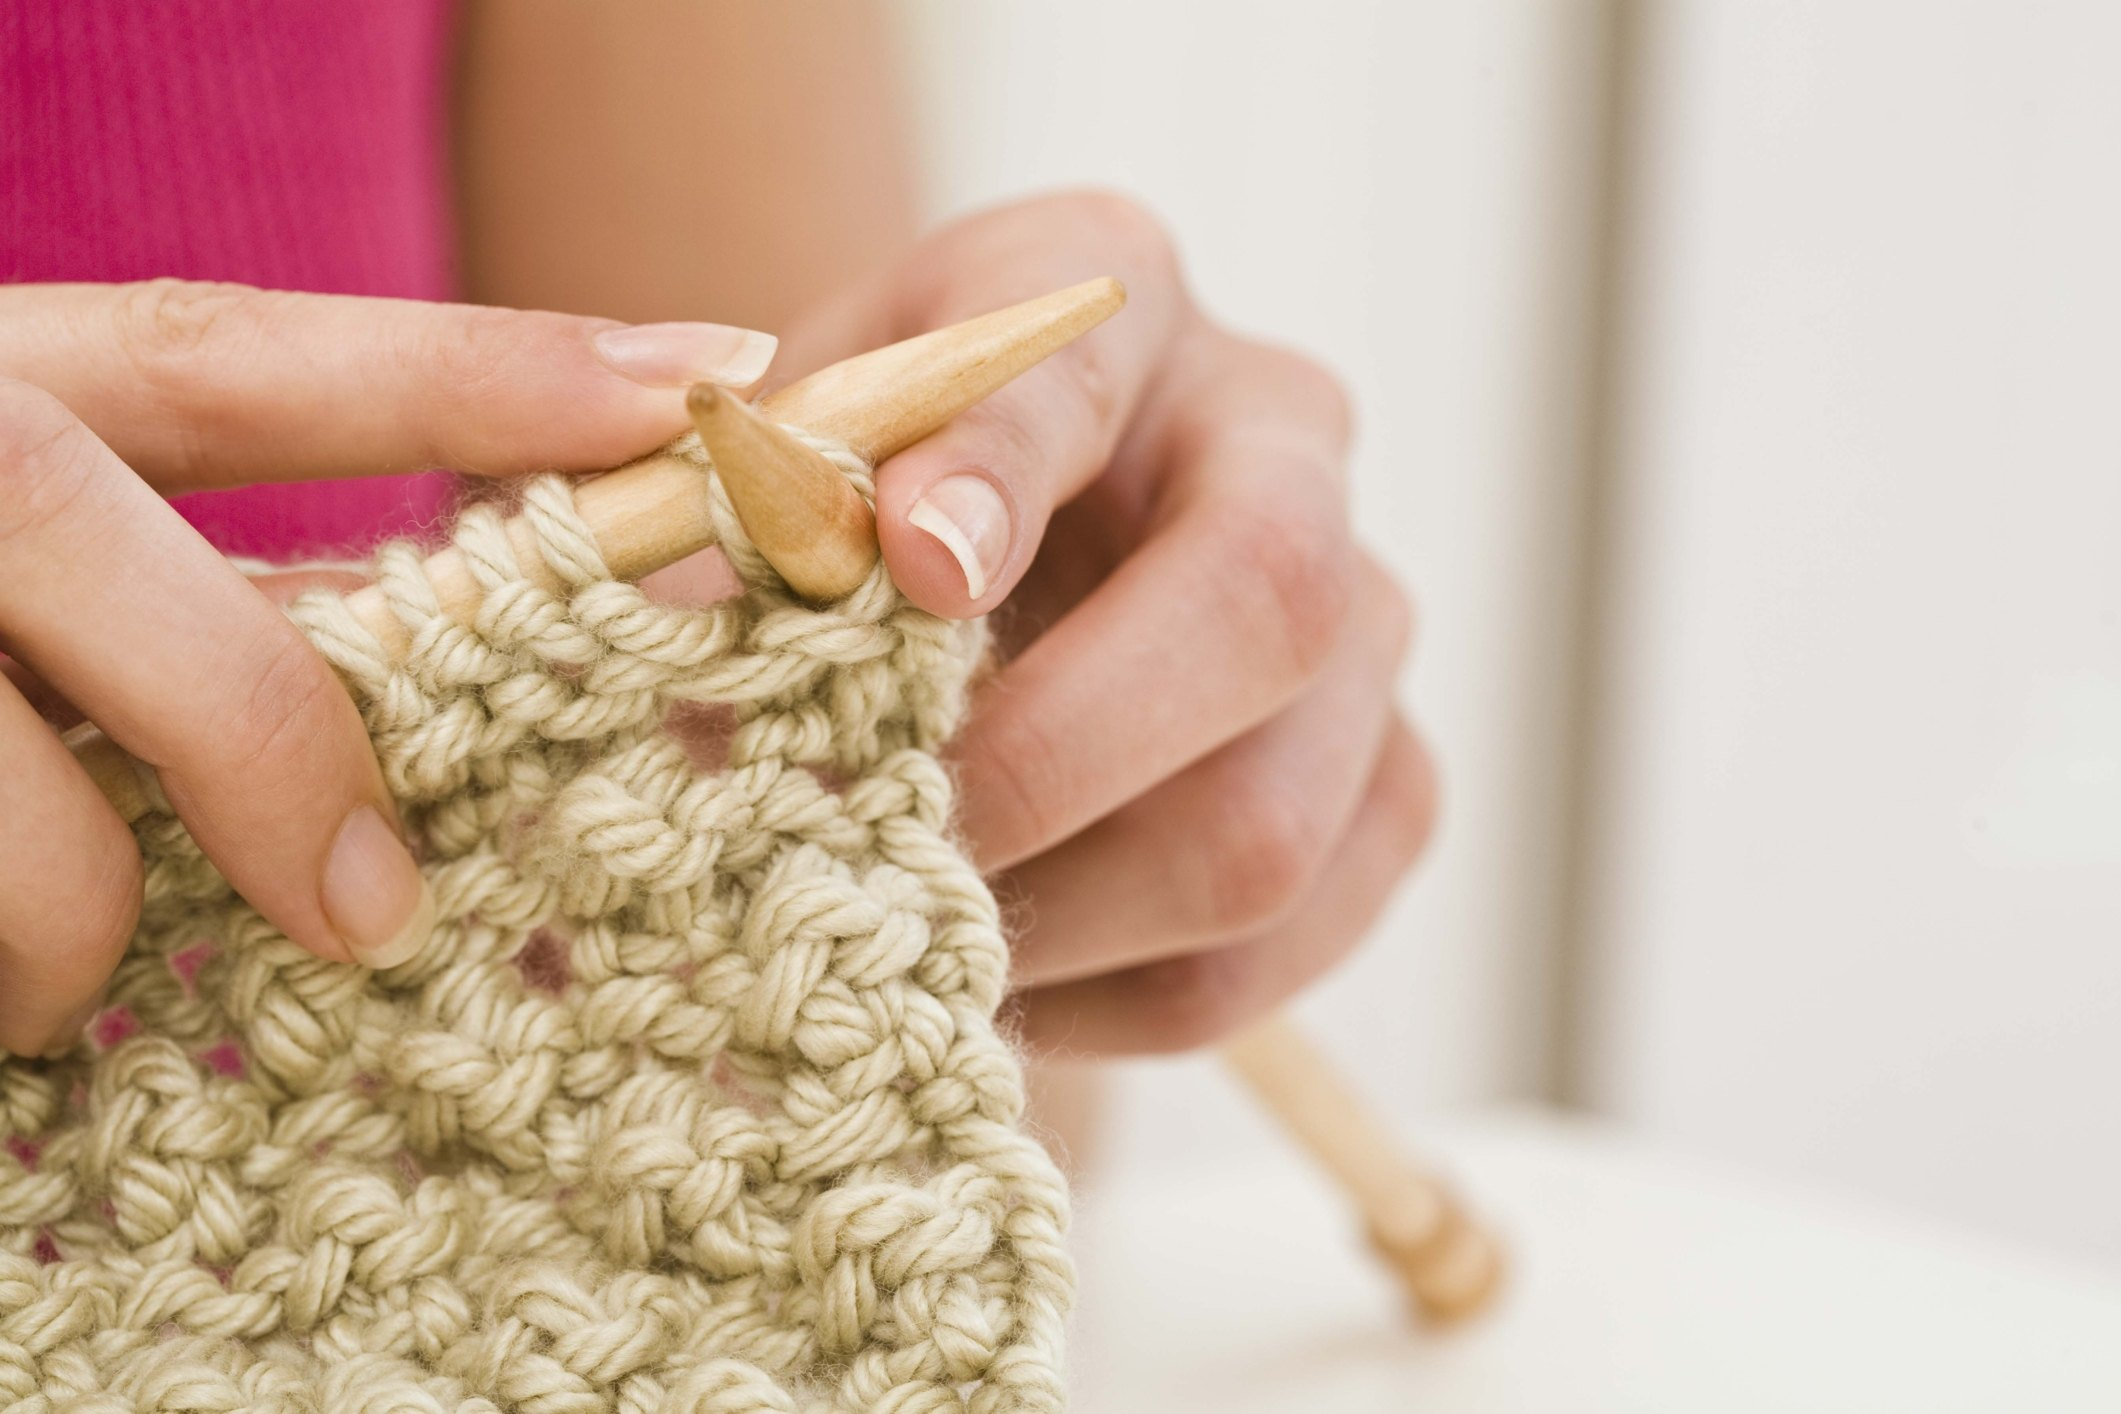 Knitting Projects With Large Knitting Needles Ehow